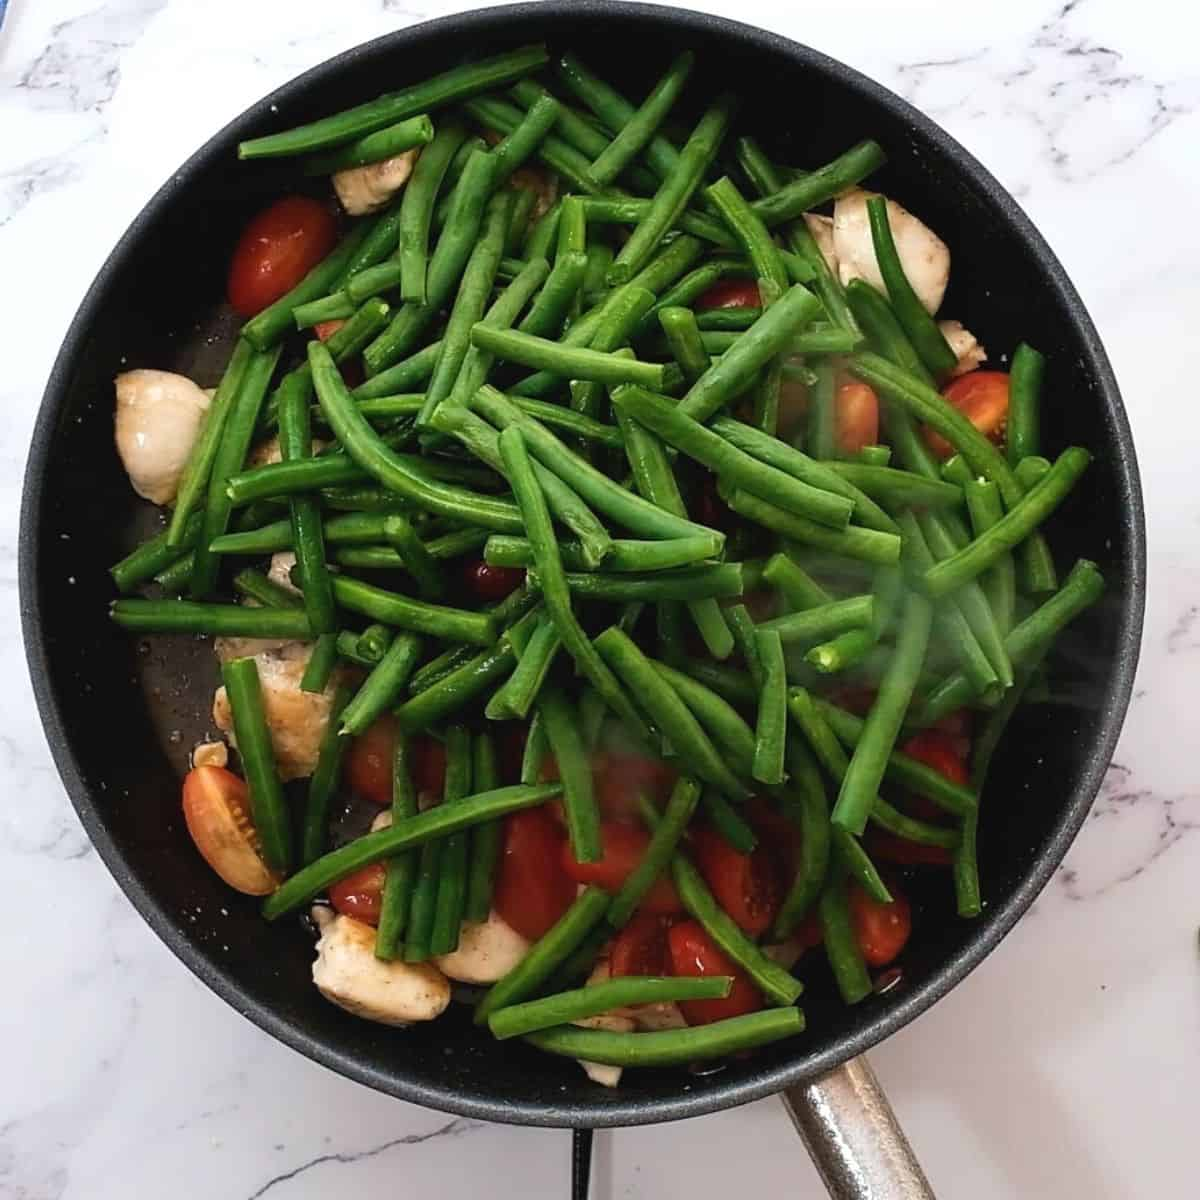 Green beans and tomatoes with chicken in skillet.